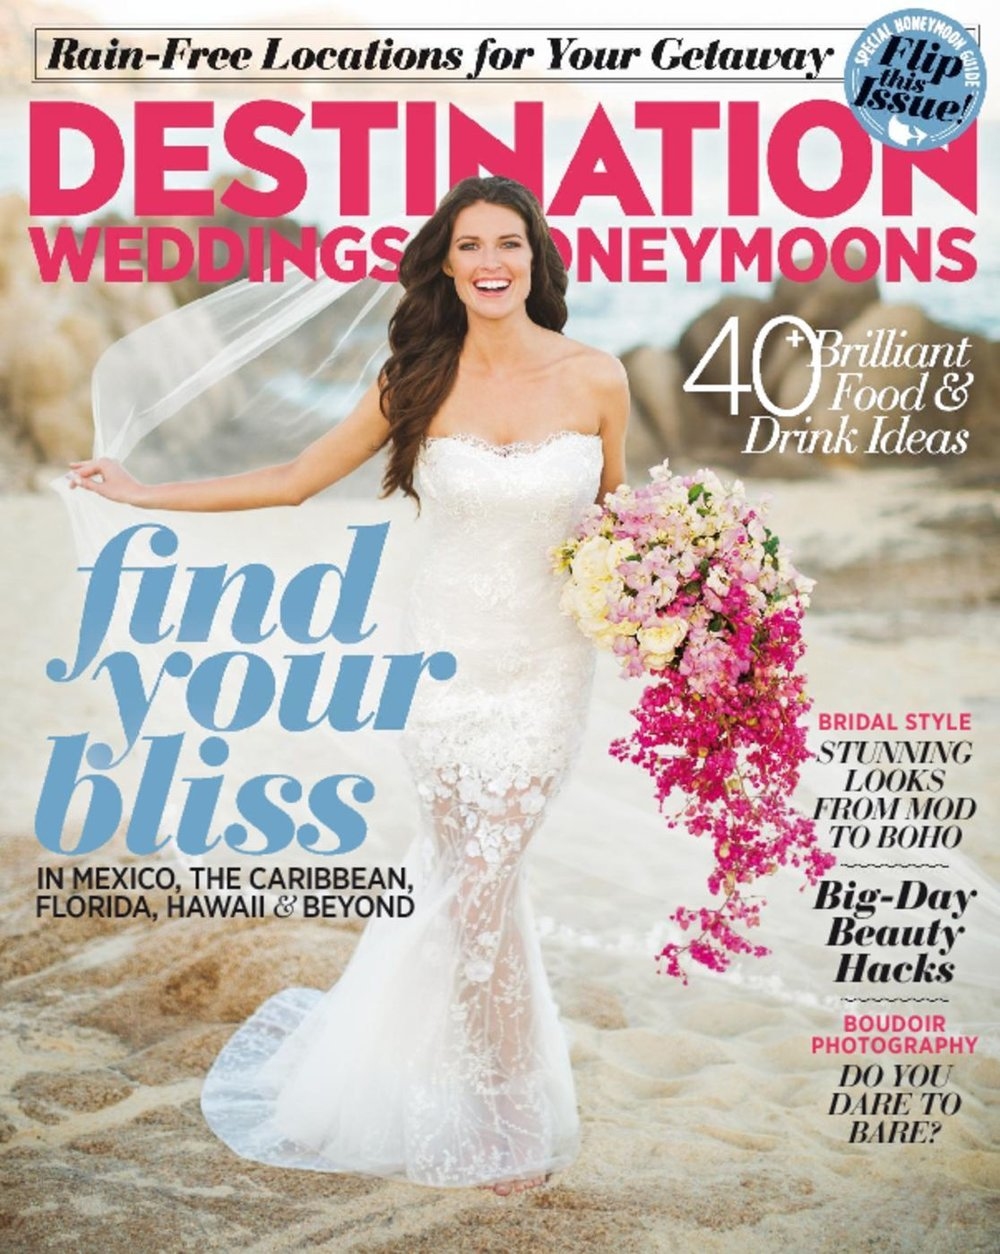 57295-destination-weddings-honeymoons-digital-Cover-2016-November-1-Issue.jpg